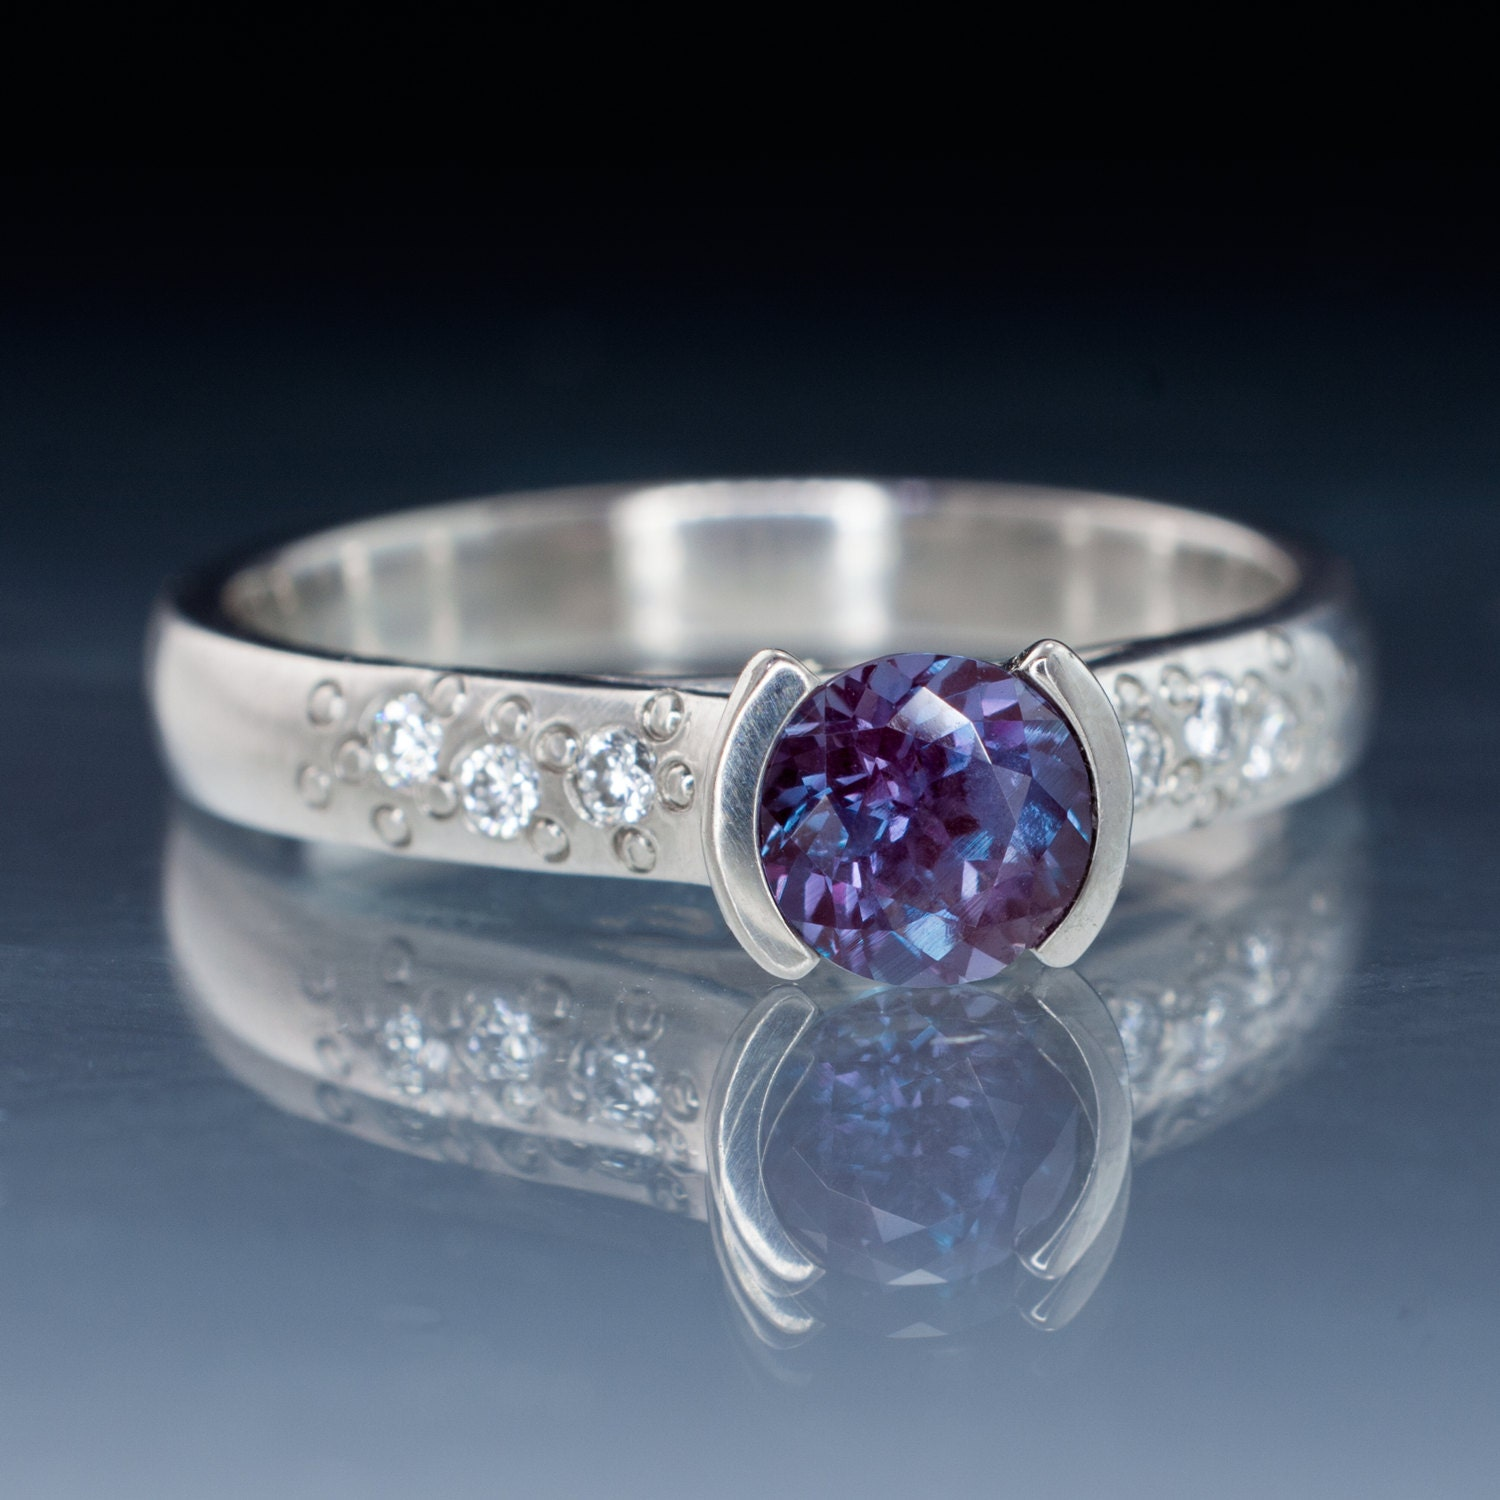 Chatham Alexandrite Engagement Ring Ethical By